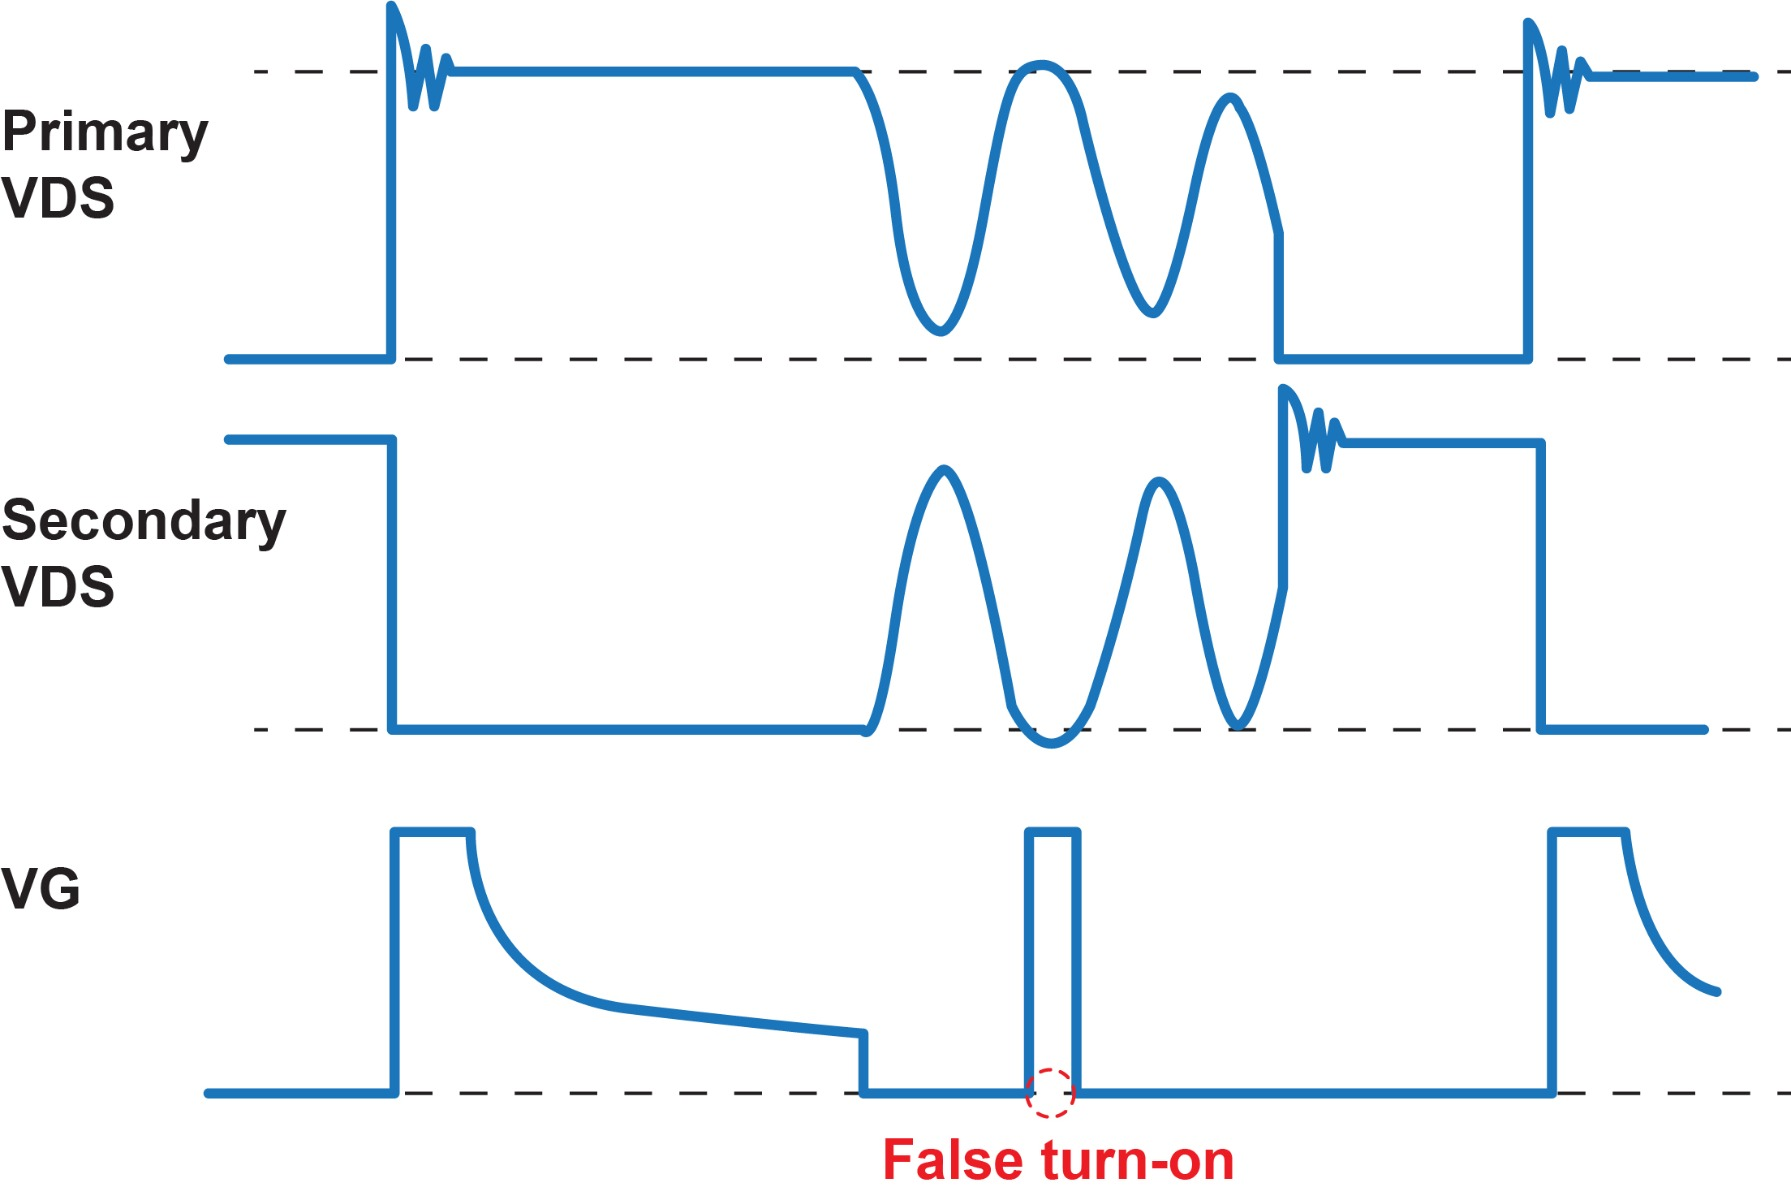 Figure 4: SR Waveform with Potentially False Turn-On during Demagnetizing Ringing